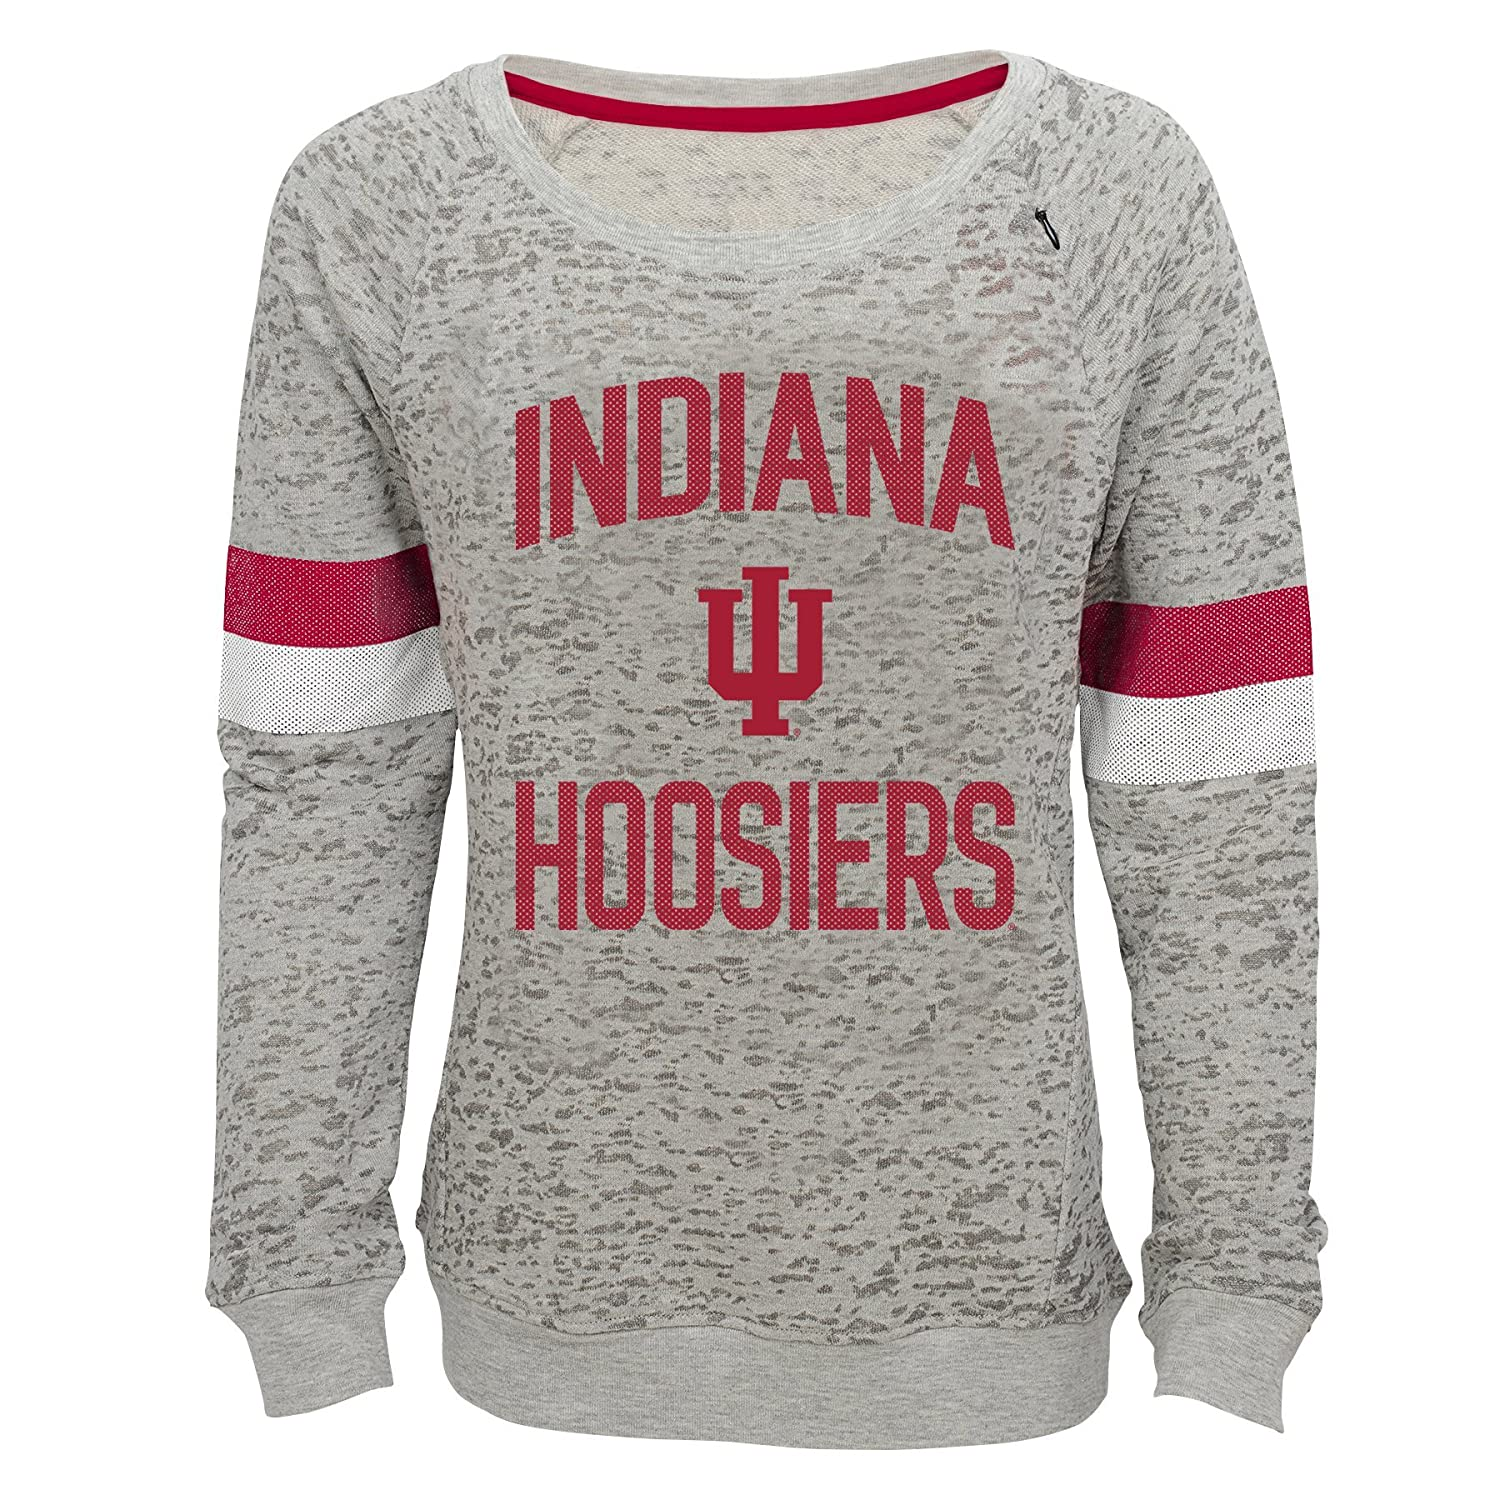 14 Youth Large Heather Grey NCAA by Outerstuff NCAA Indiana Hoosiers Youth Girls My City Boat Neck Pullover